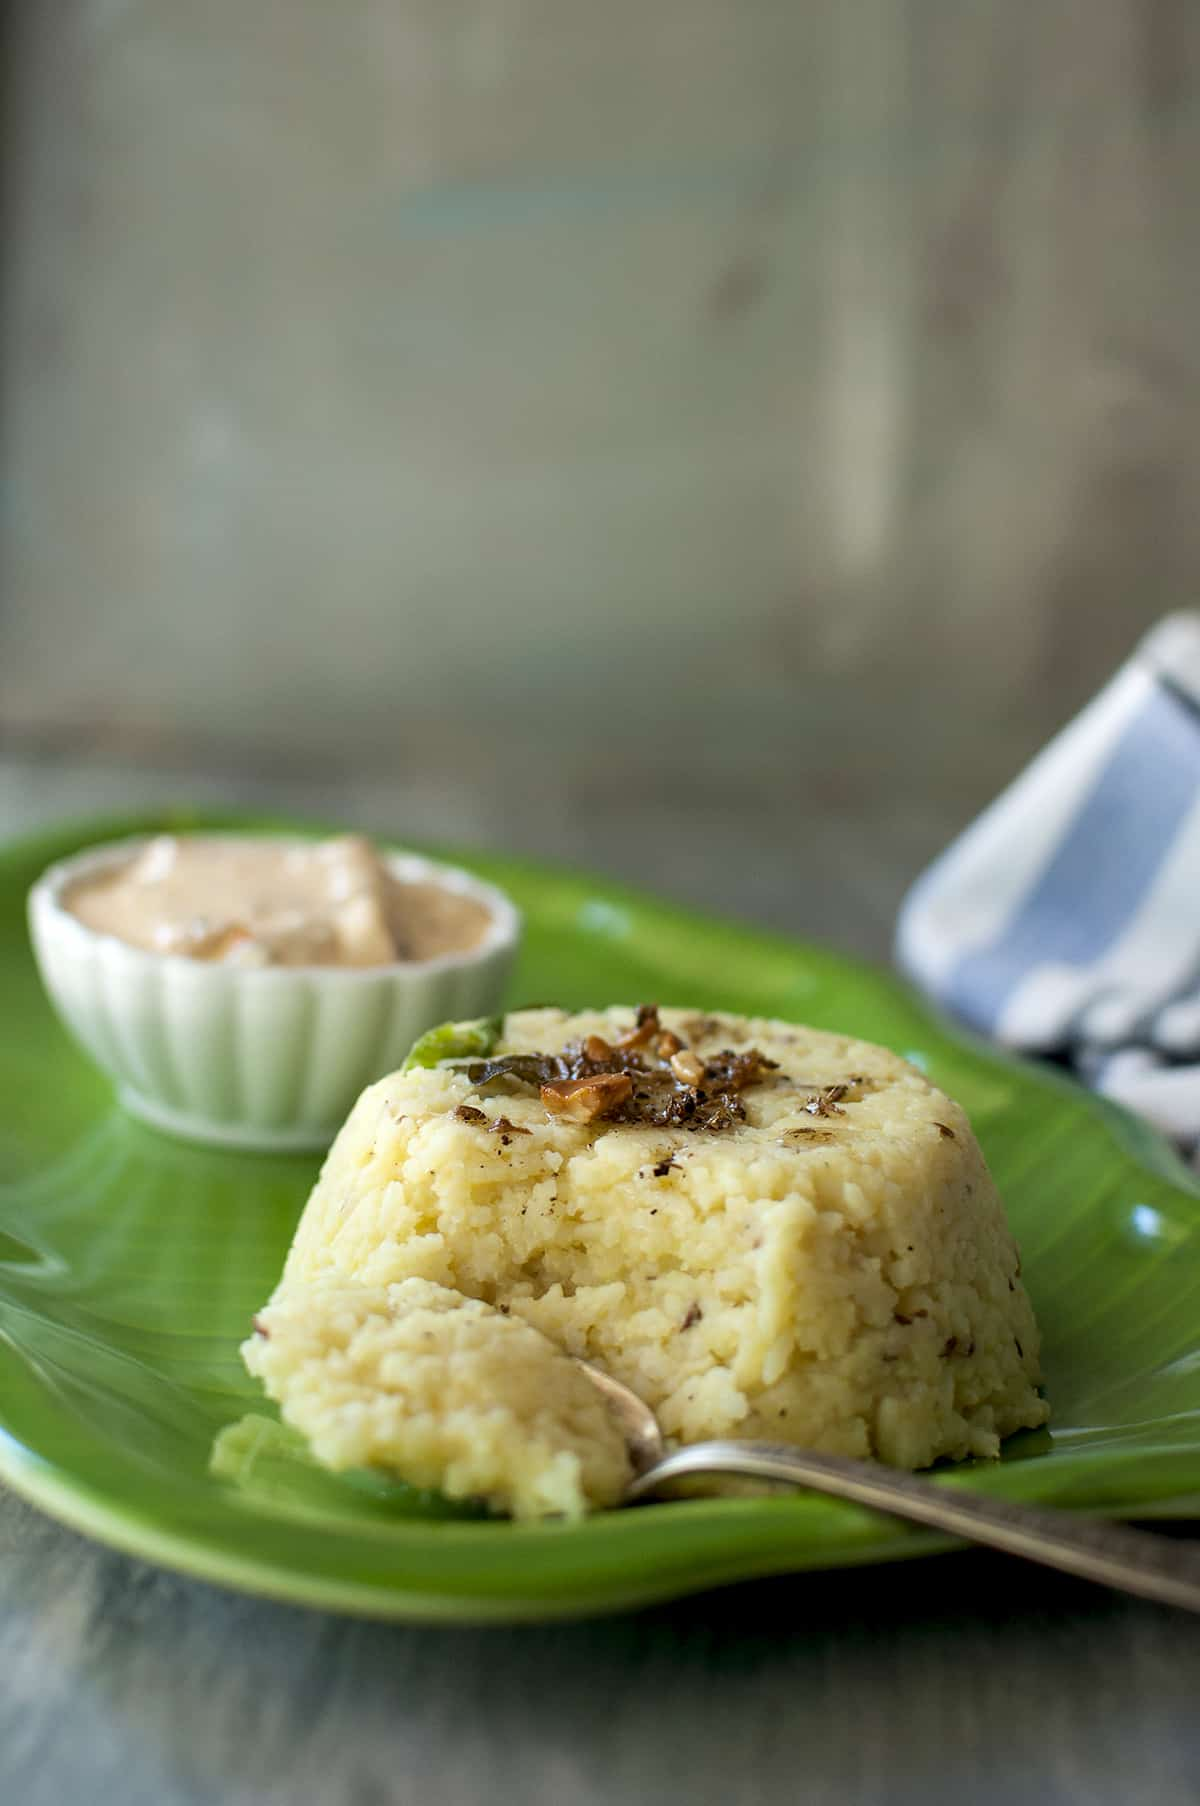 green plate with a spoon of scooped up pongal